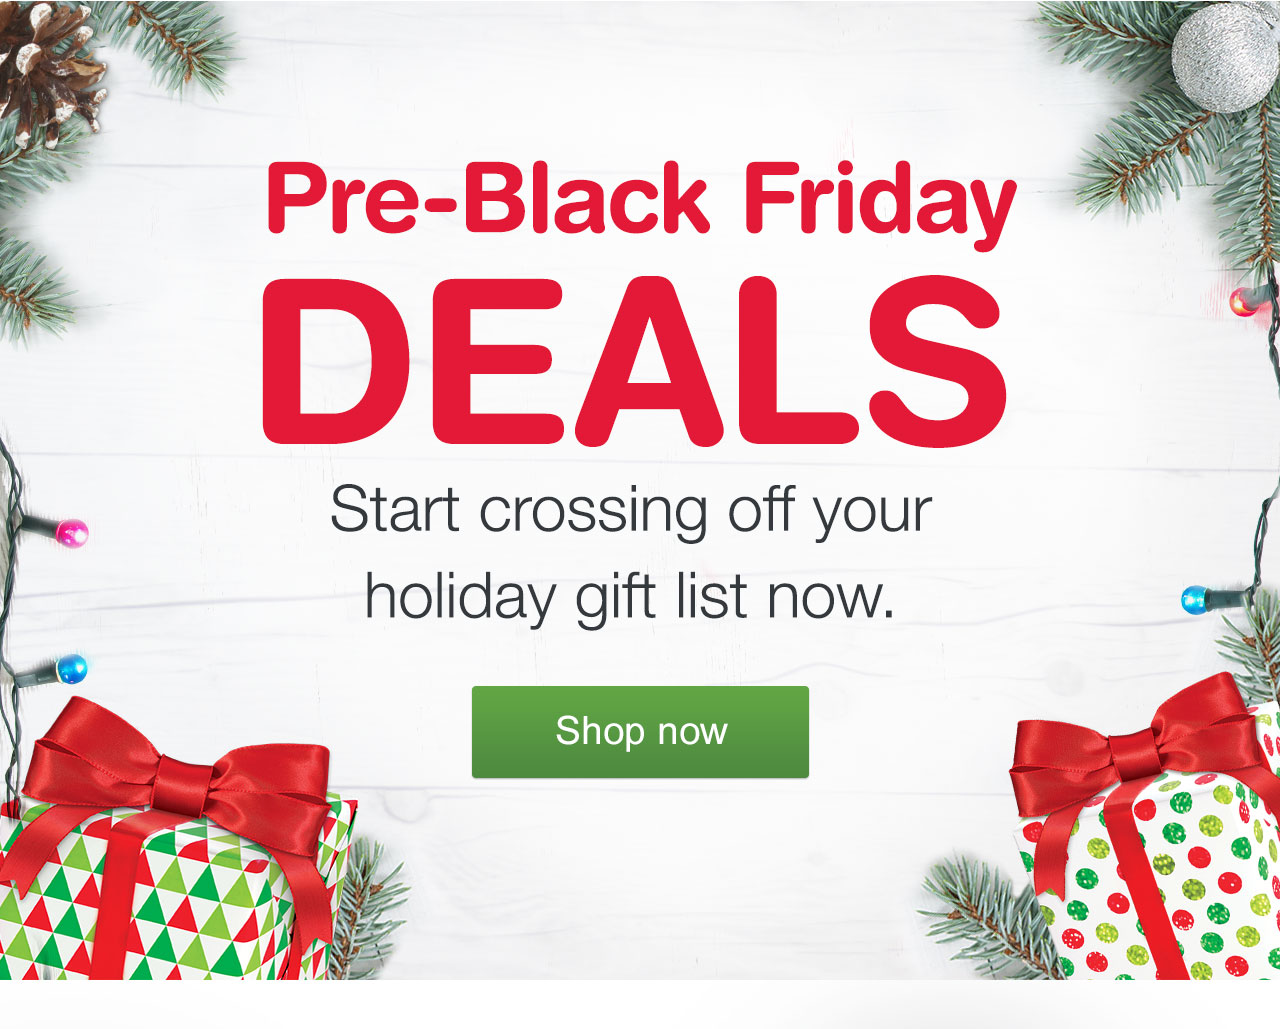 Pre-Black Friday Deals. Start crossing off your holiday gift list now.